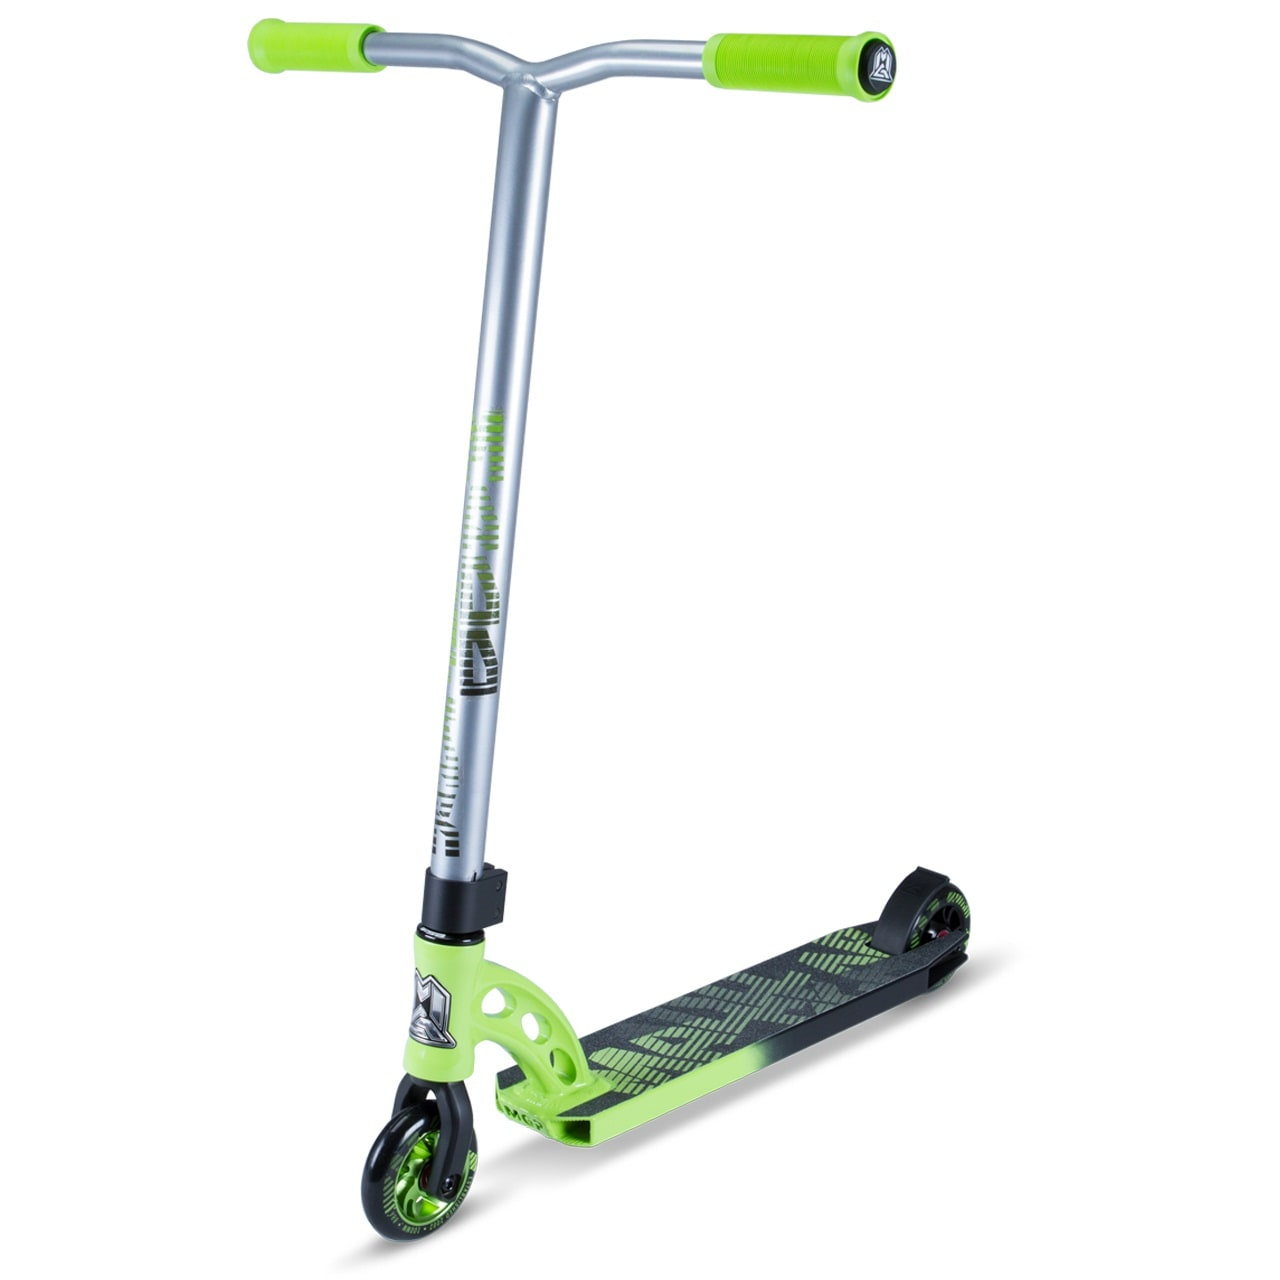 MGP VX7 Pro Complete Scooter